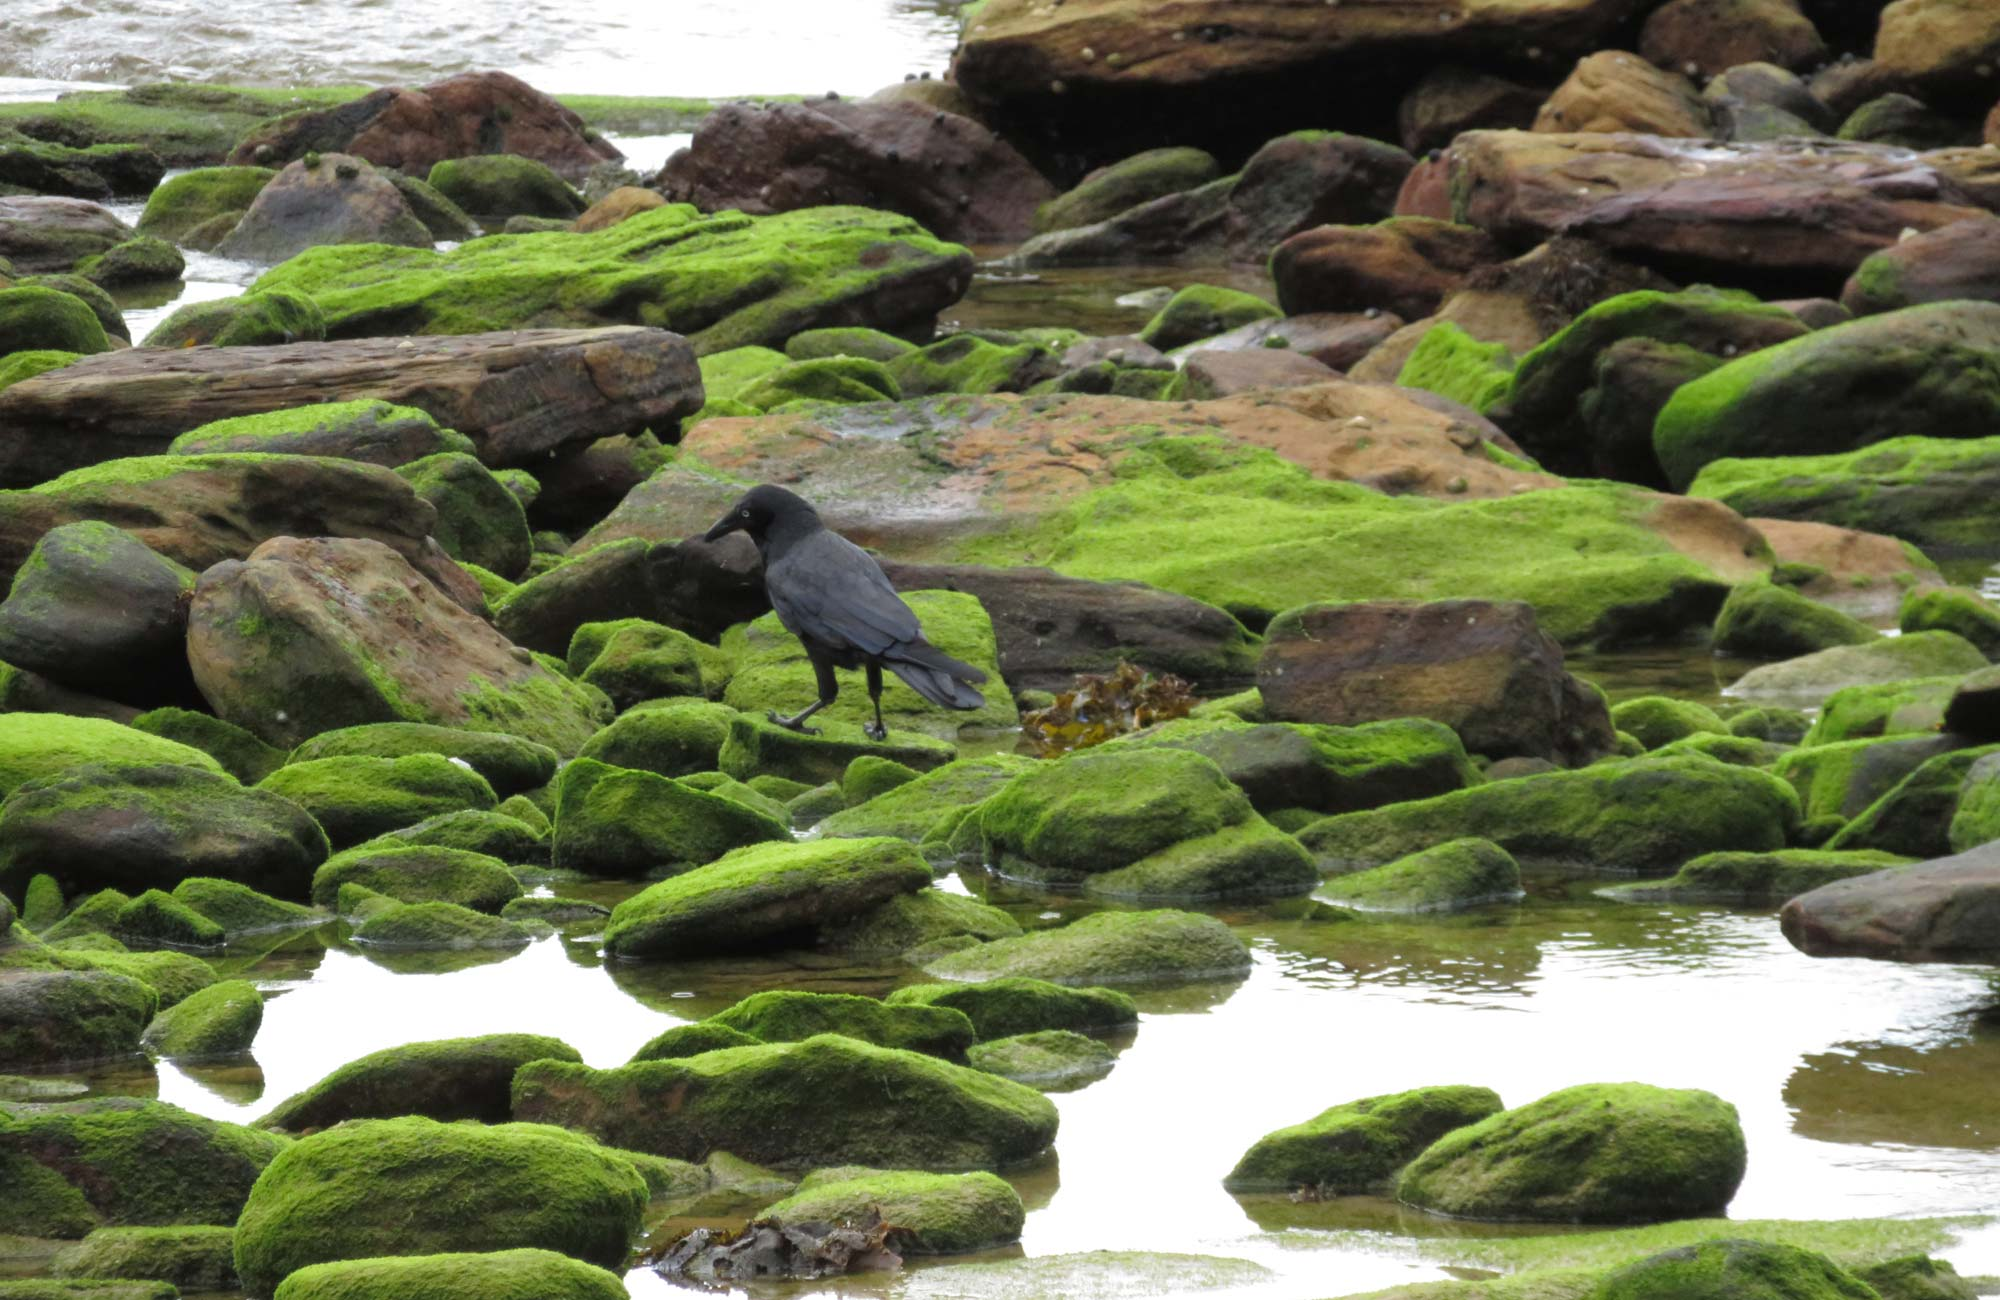 Bird on the rocks in Curracurrang in Royal National Park. Photo: K Cooper/OEH